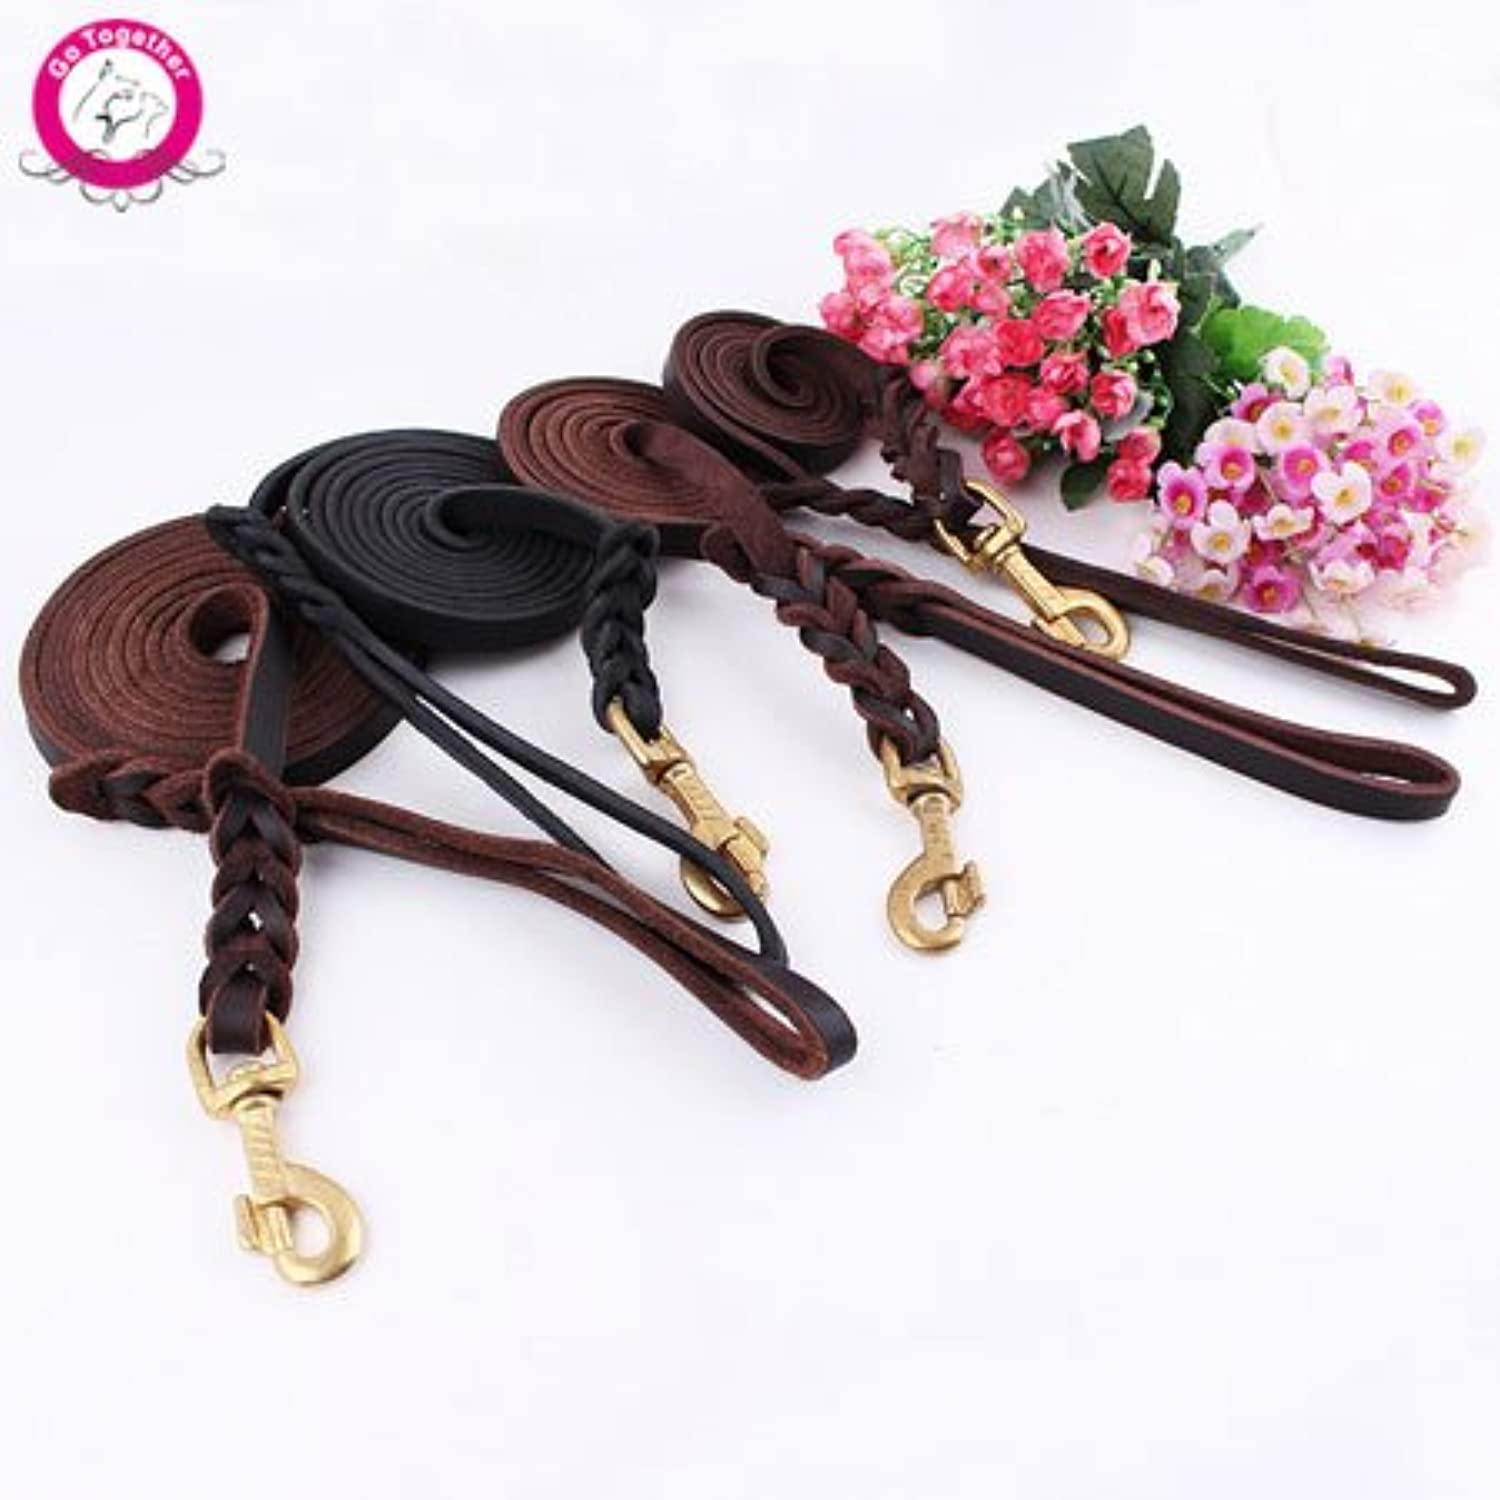 365Cor(TM) High Quality Genuine Leather Pet Dog Leash Luxury Strong Puppy Collar Leash Lead For Large Dogs S M L XL